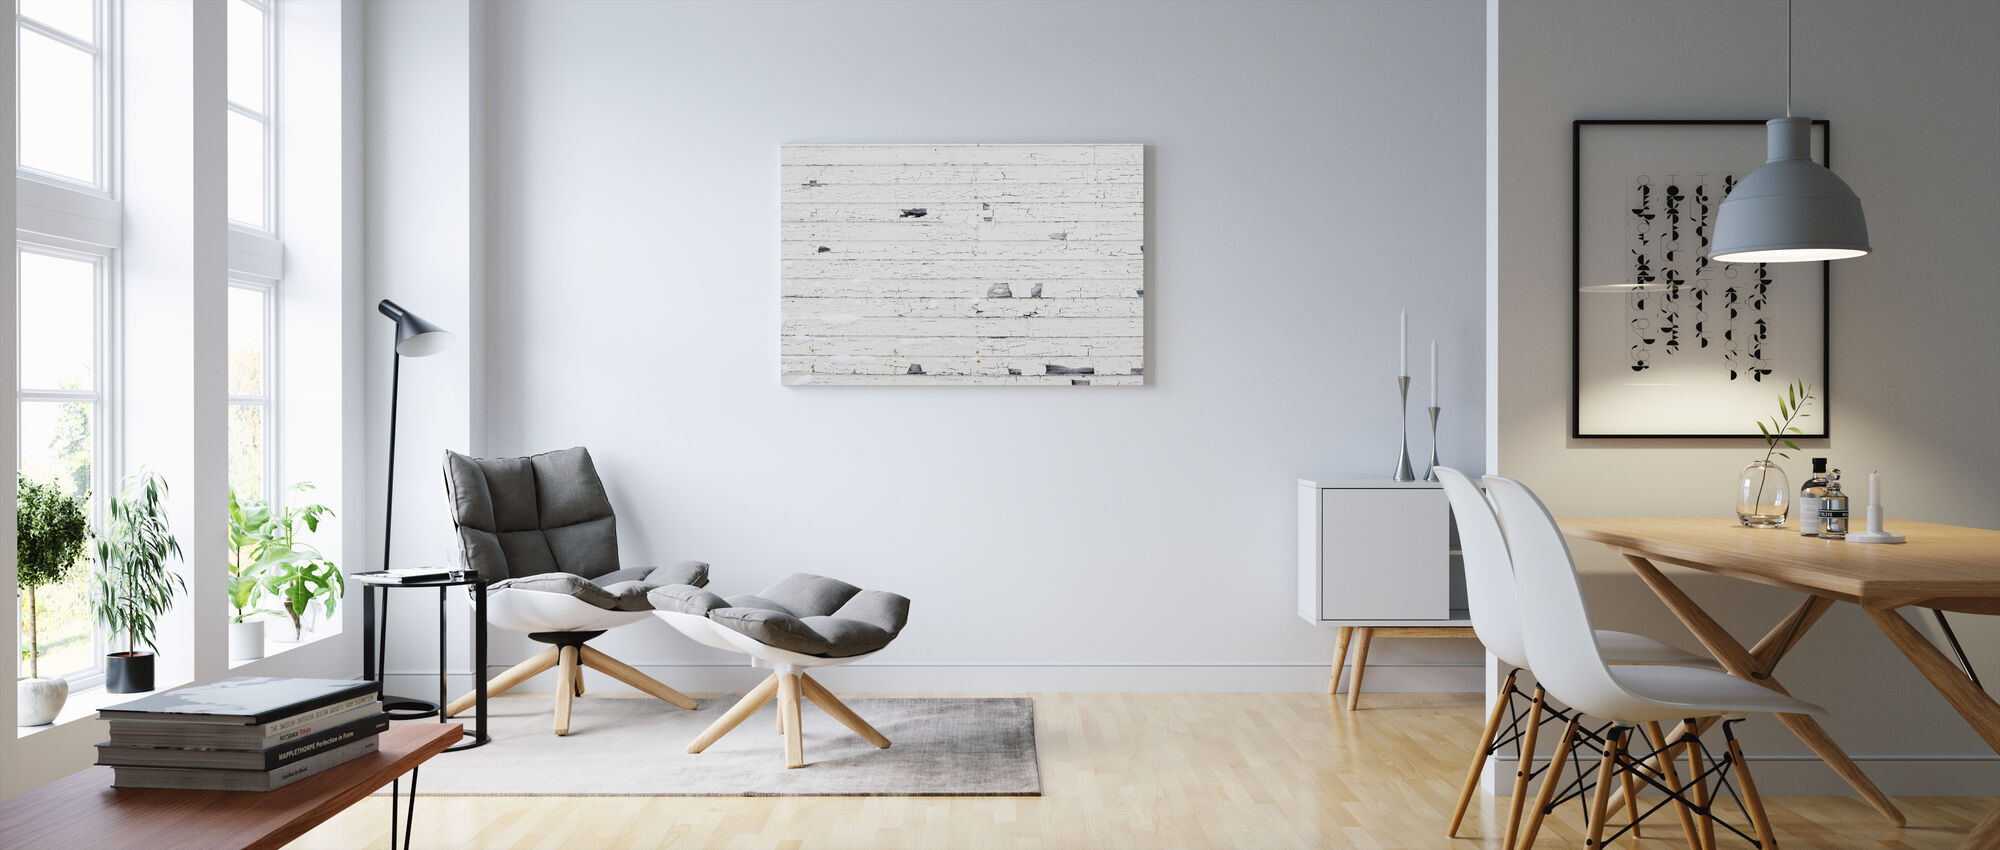 White Woodenwall with Snow - Canvas print - Living Room